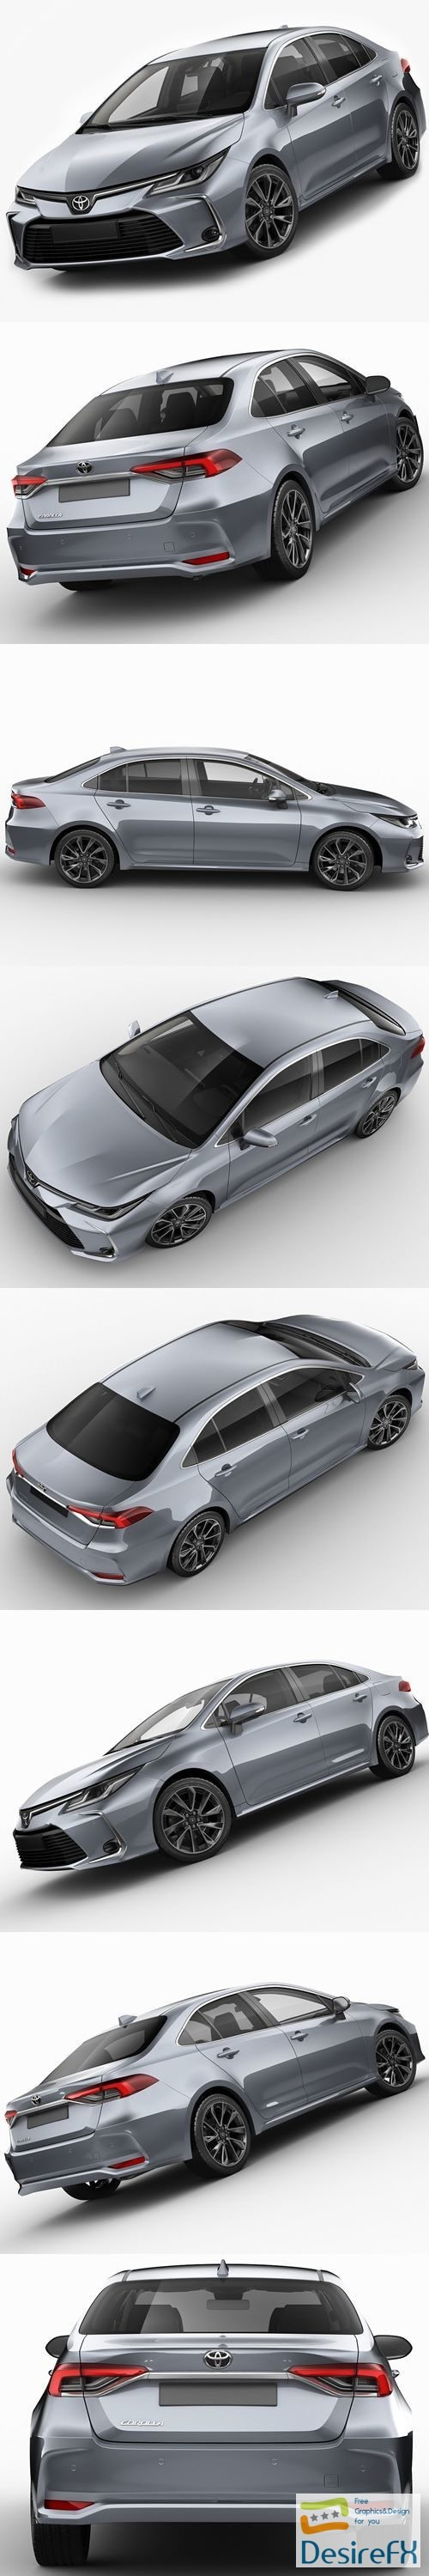 3d-models - Toyota Corolla Sedan EU 2019 3D Model